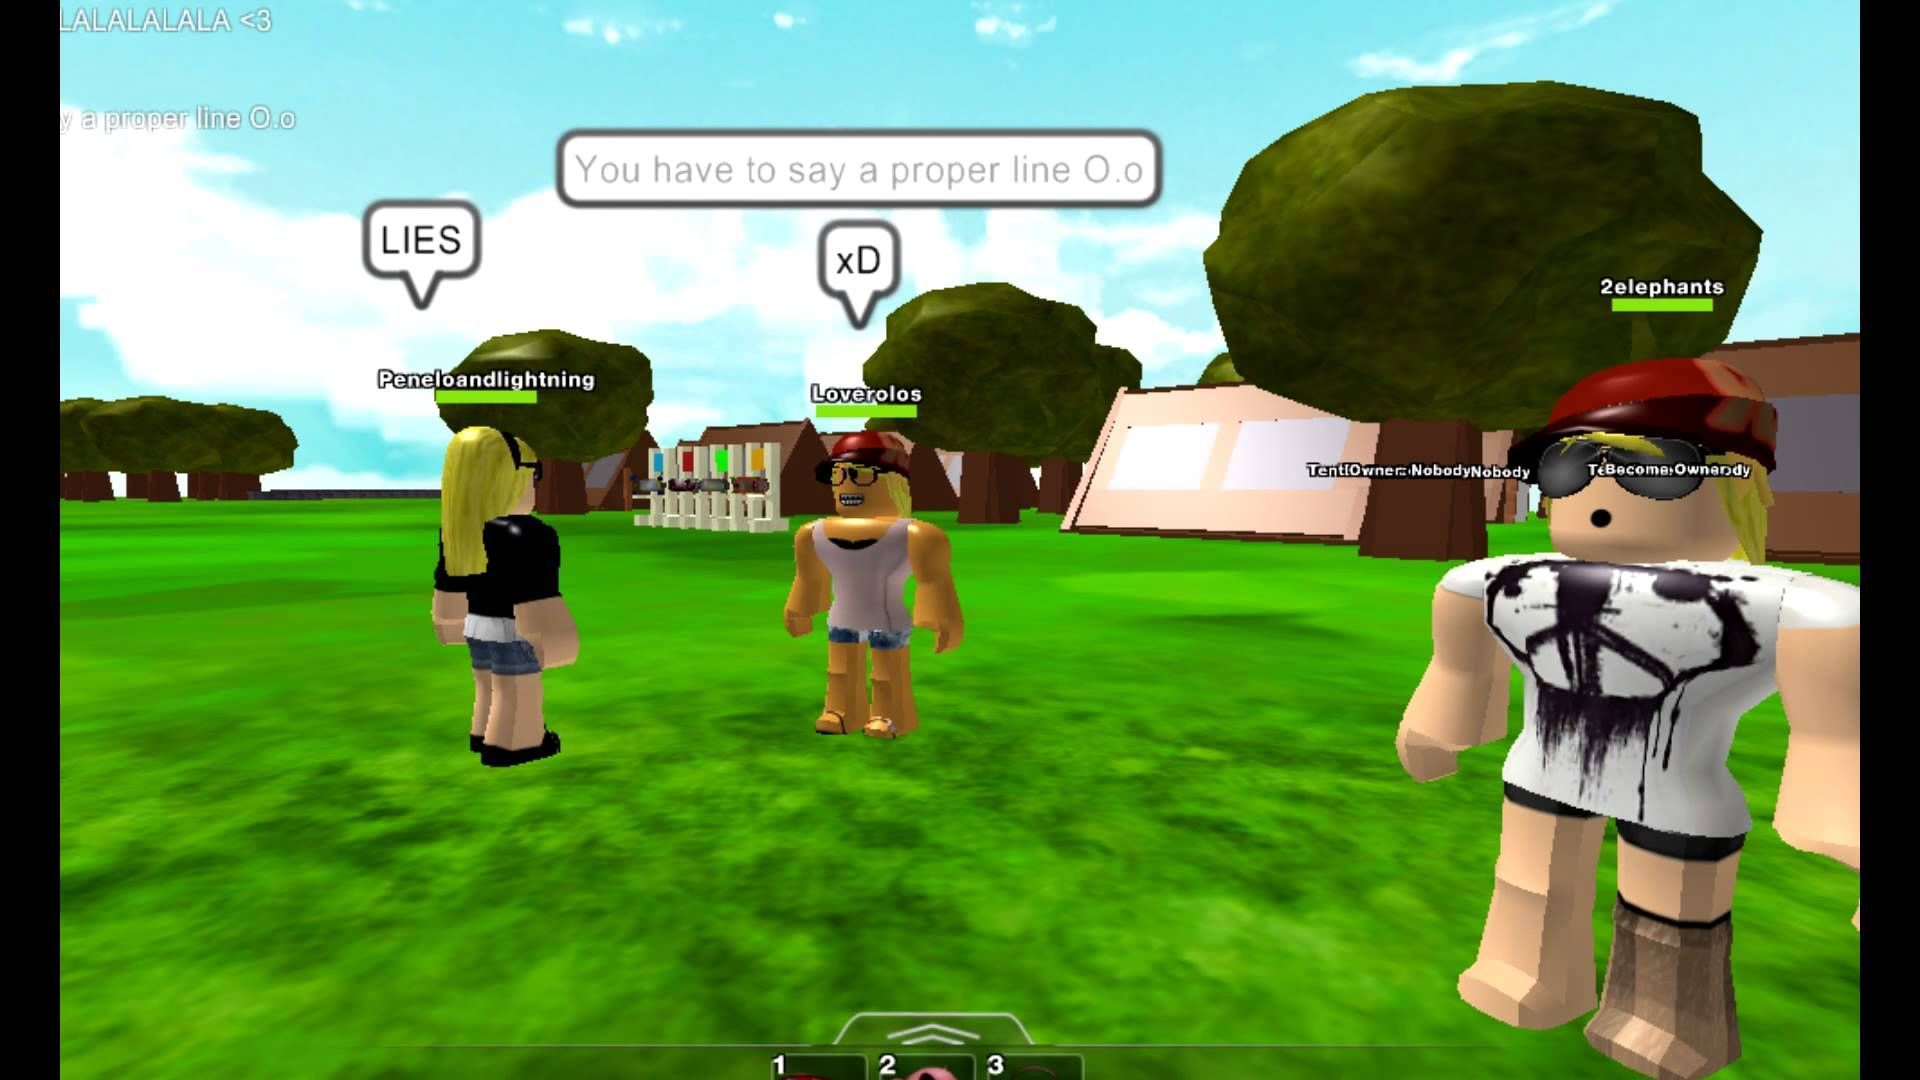 I Knew You Were Trouble Roblox Video Online Video Games - cool game you should play roblox